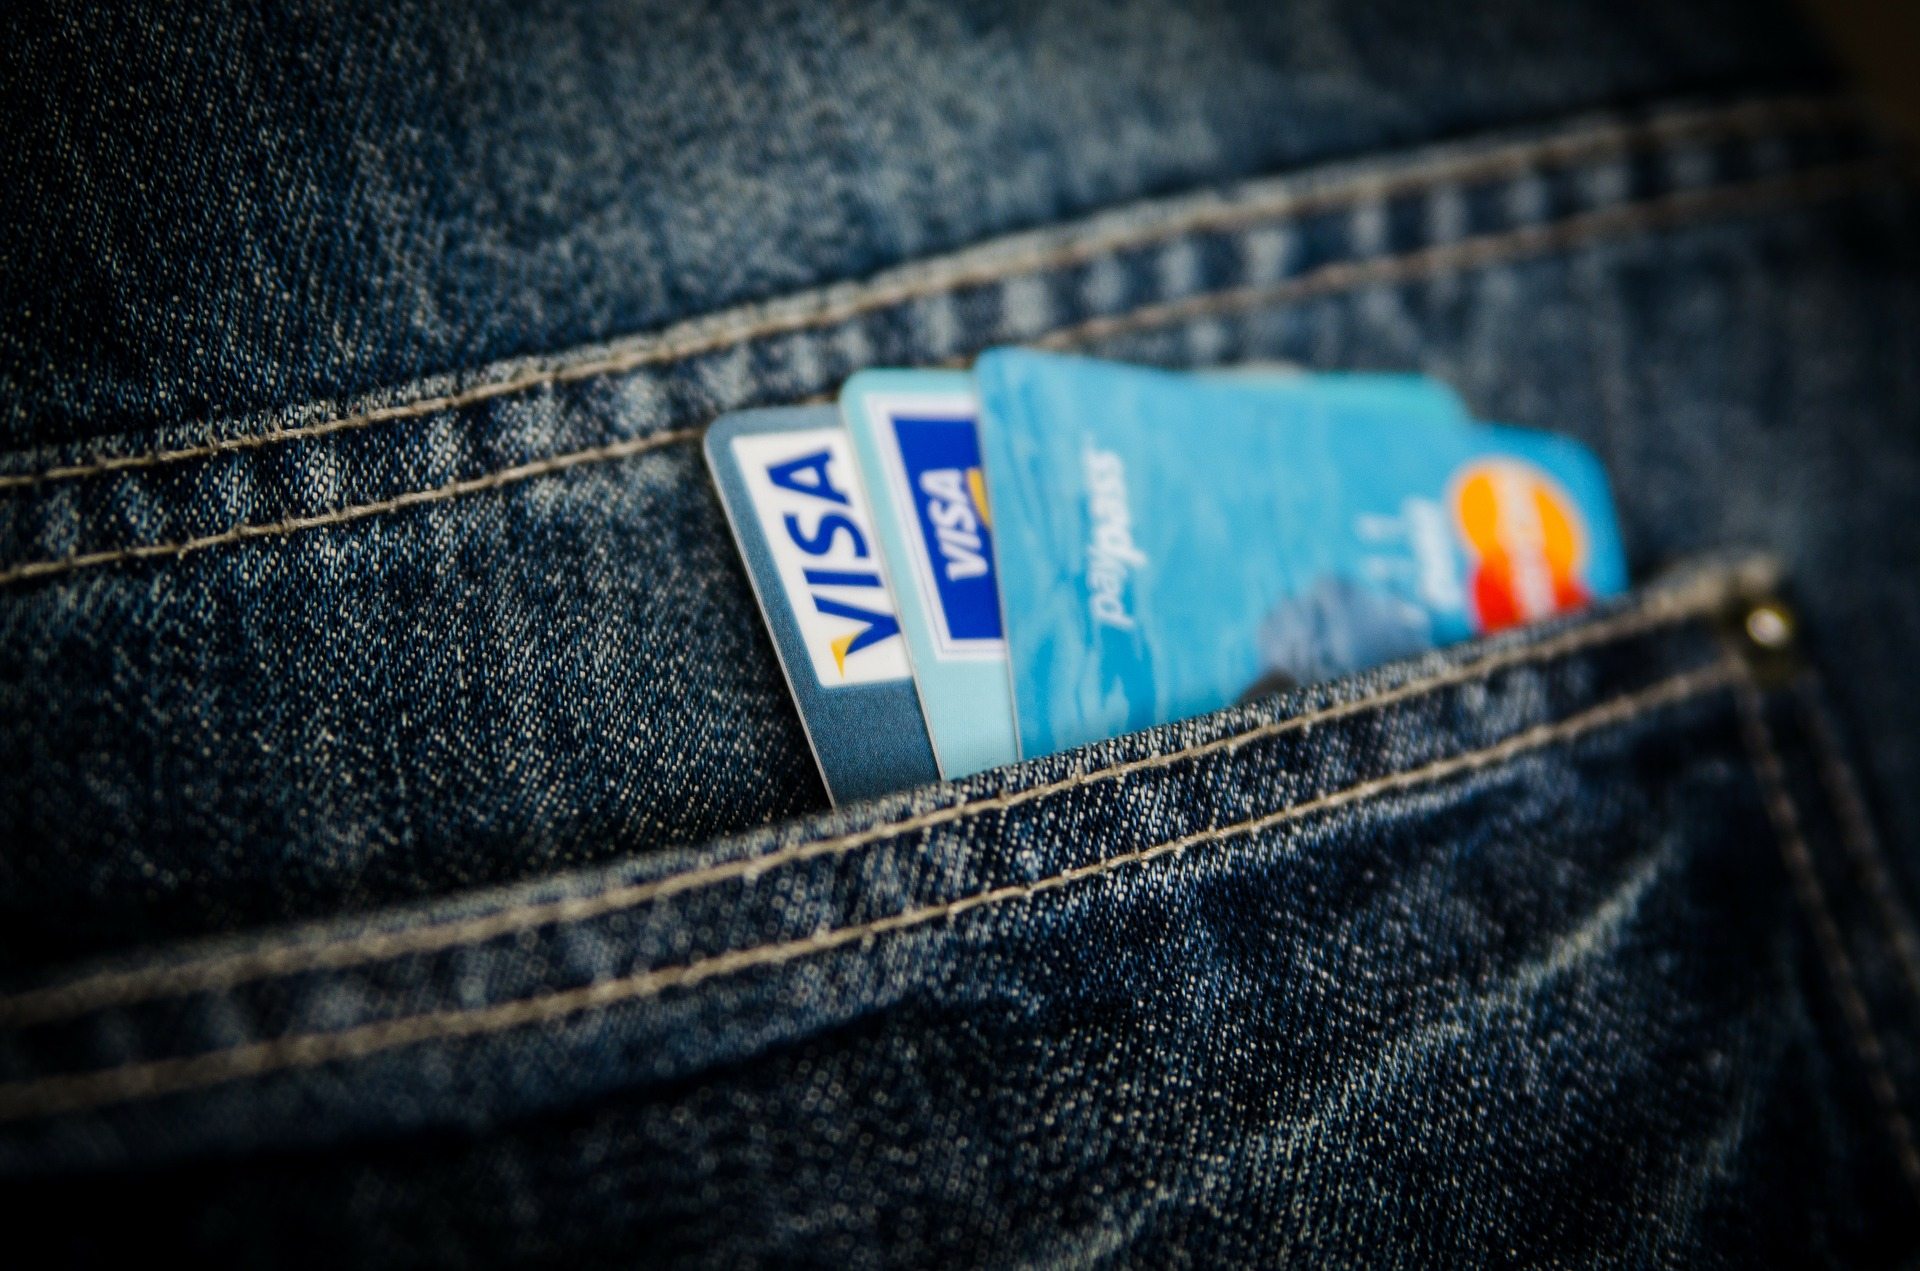 Visa Issues NFT Report After Buying CryptoPunk, Cites Ethereum & Flow Blockchains